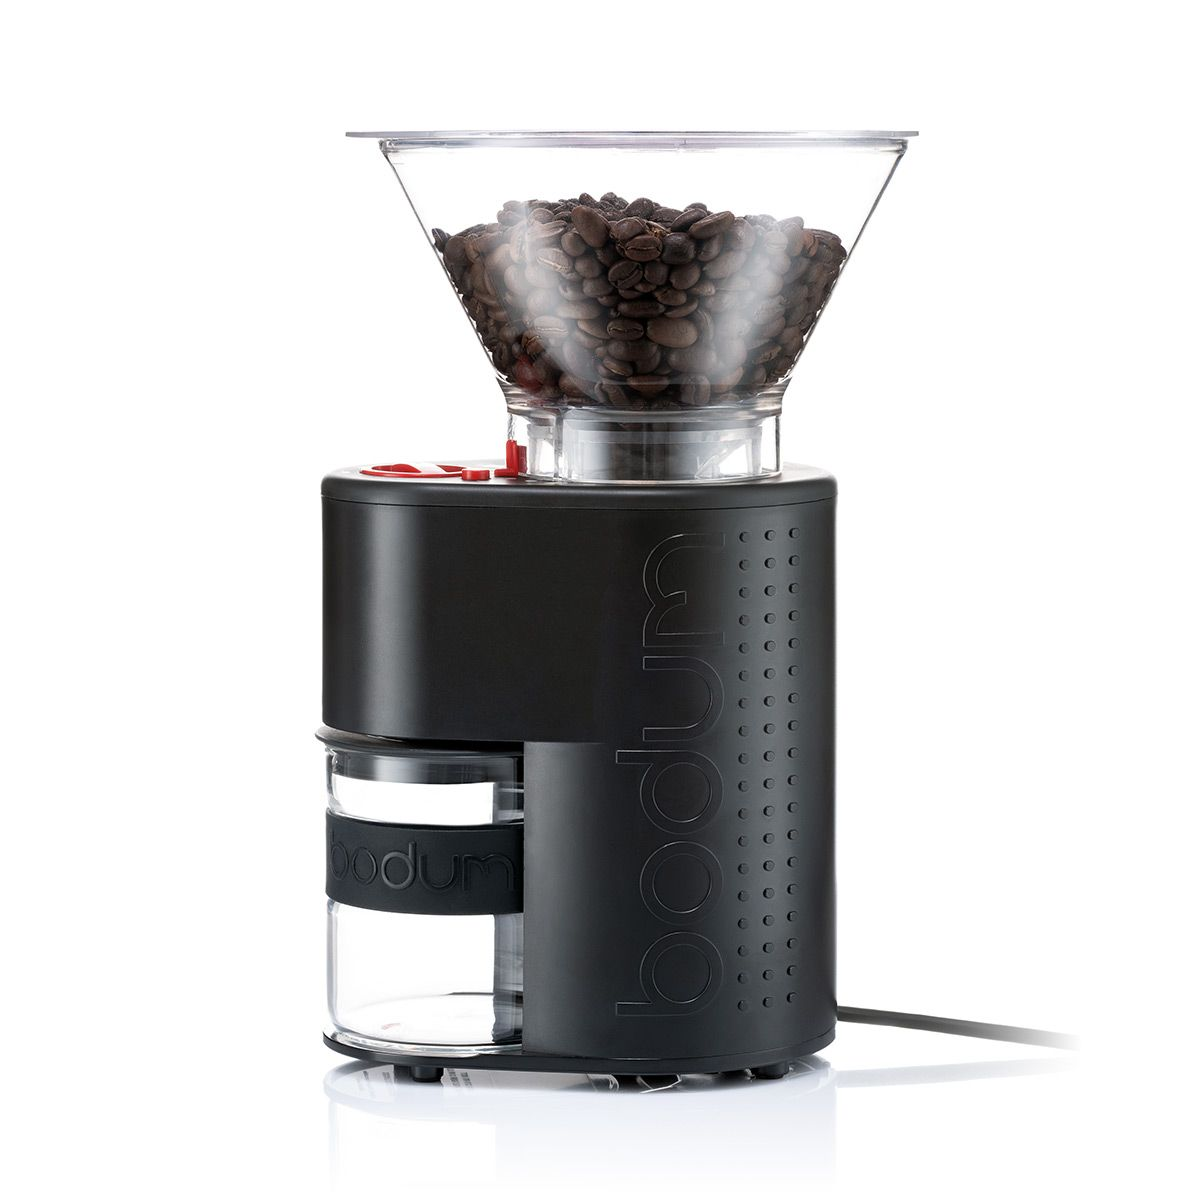 Burr Coffee Grinder BISTRO Bodum - Black